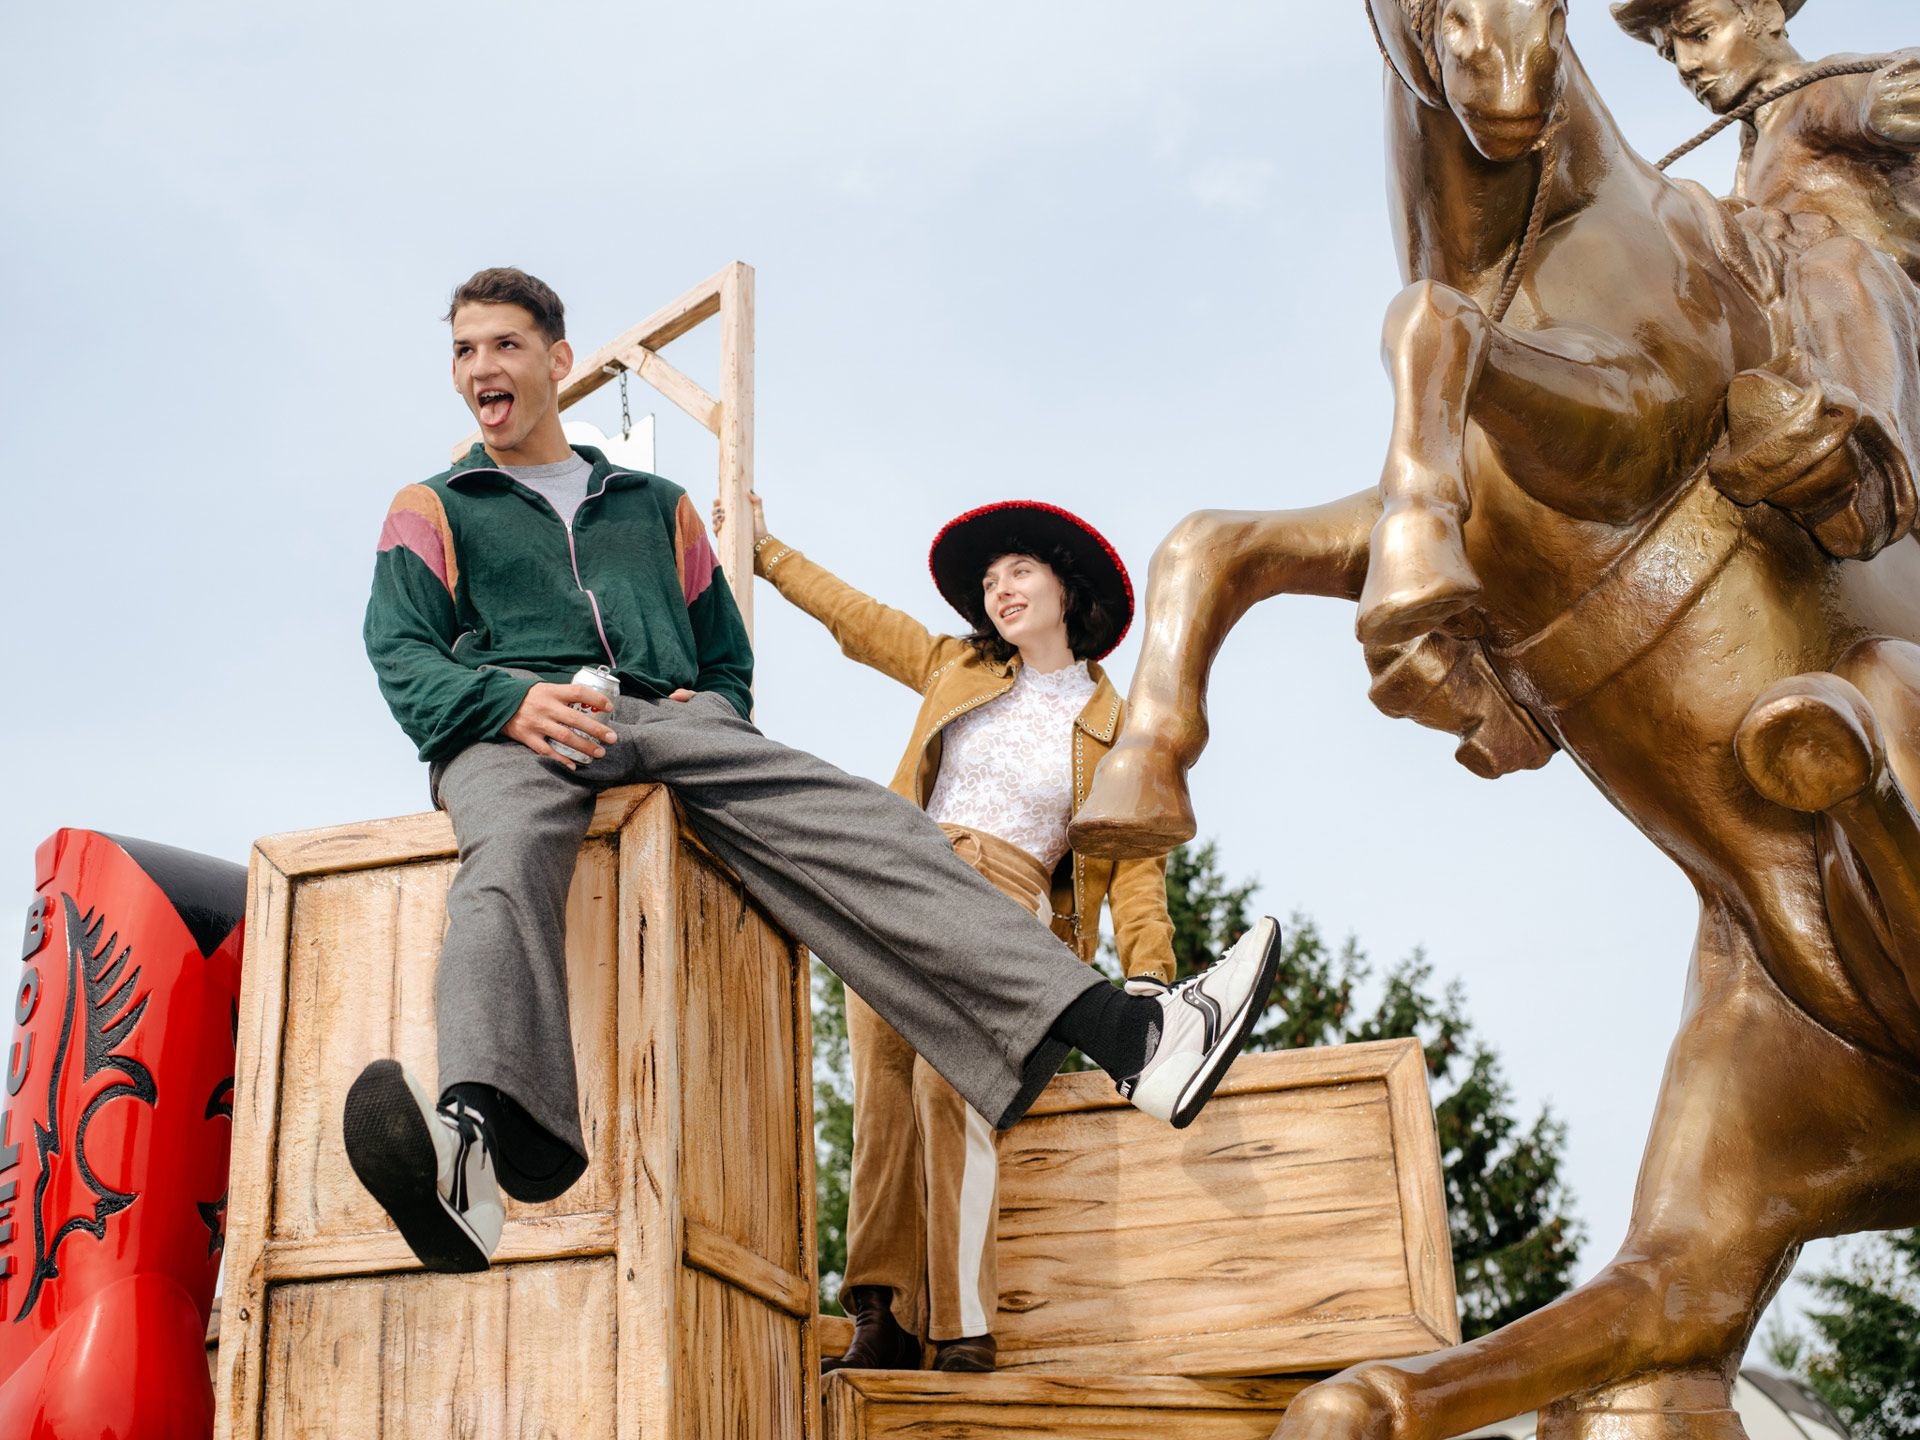 boy and girl posing on wood boxes next to cowboy statue by Alexi Hobbs for Larose Paris in St-Tite